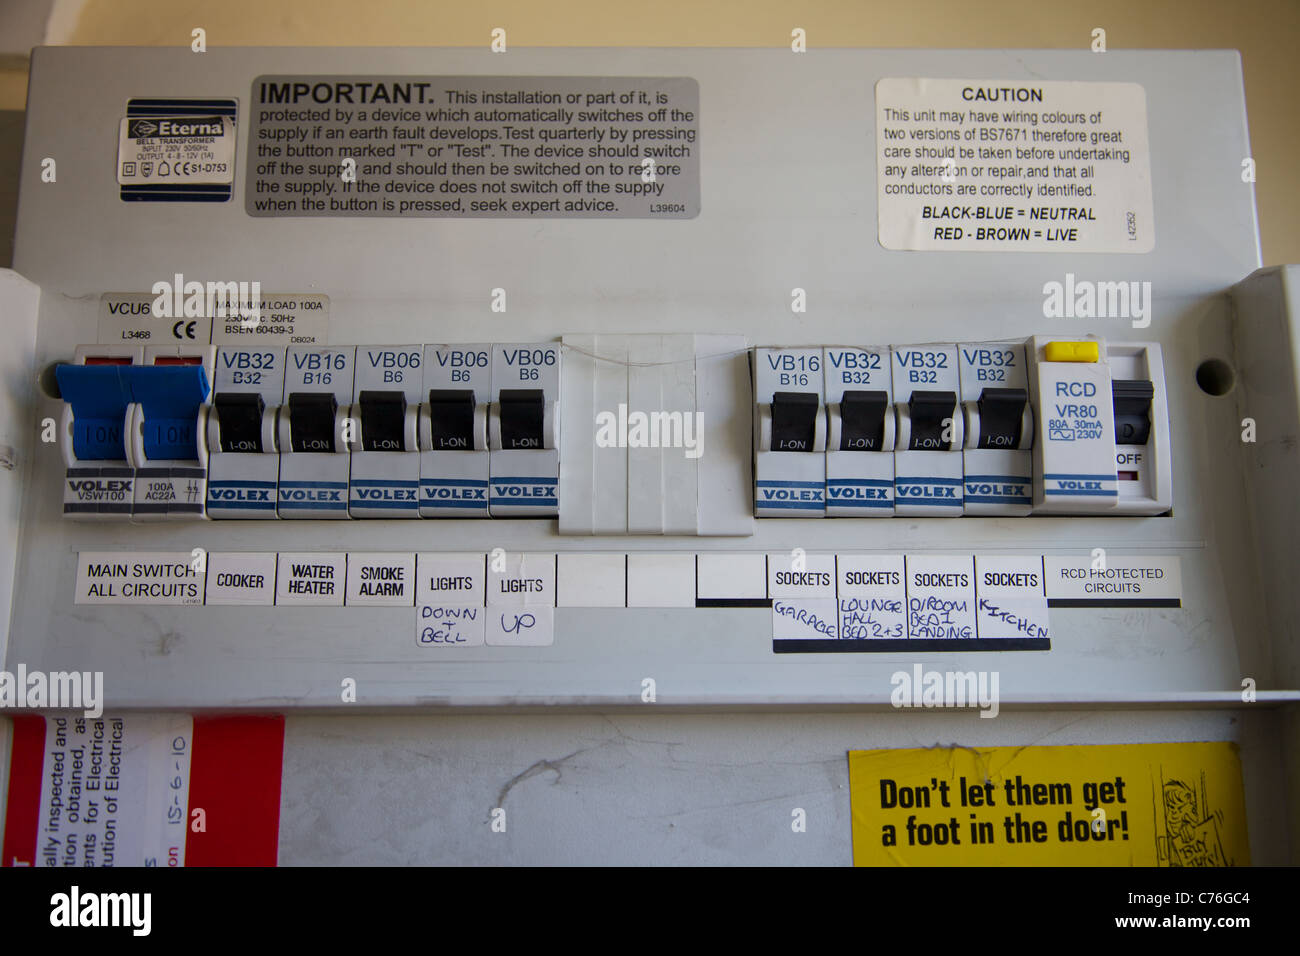 Domestic Fuse Box Stock Photos & Domestic Fuse Box Stock ... on